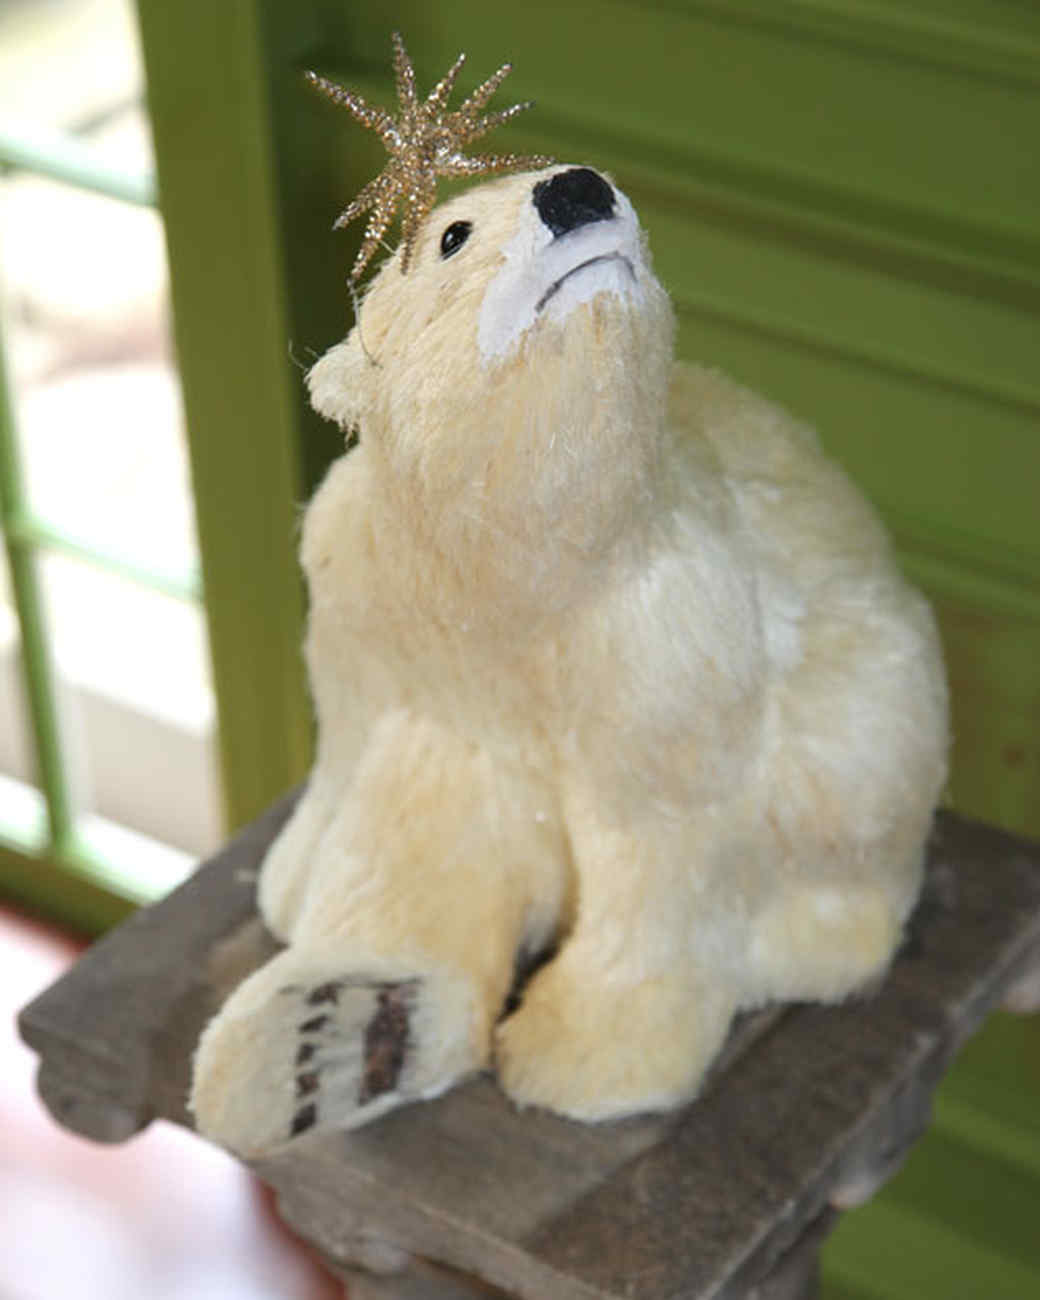 martha-christmas-2010-polarbear-0823.jpg